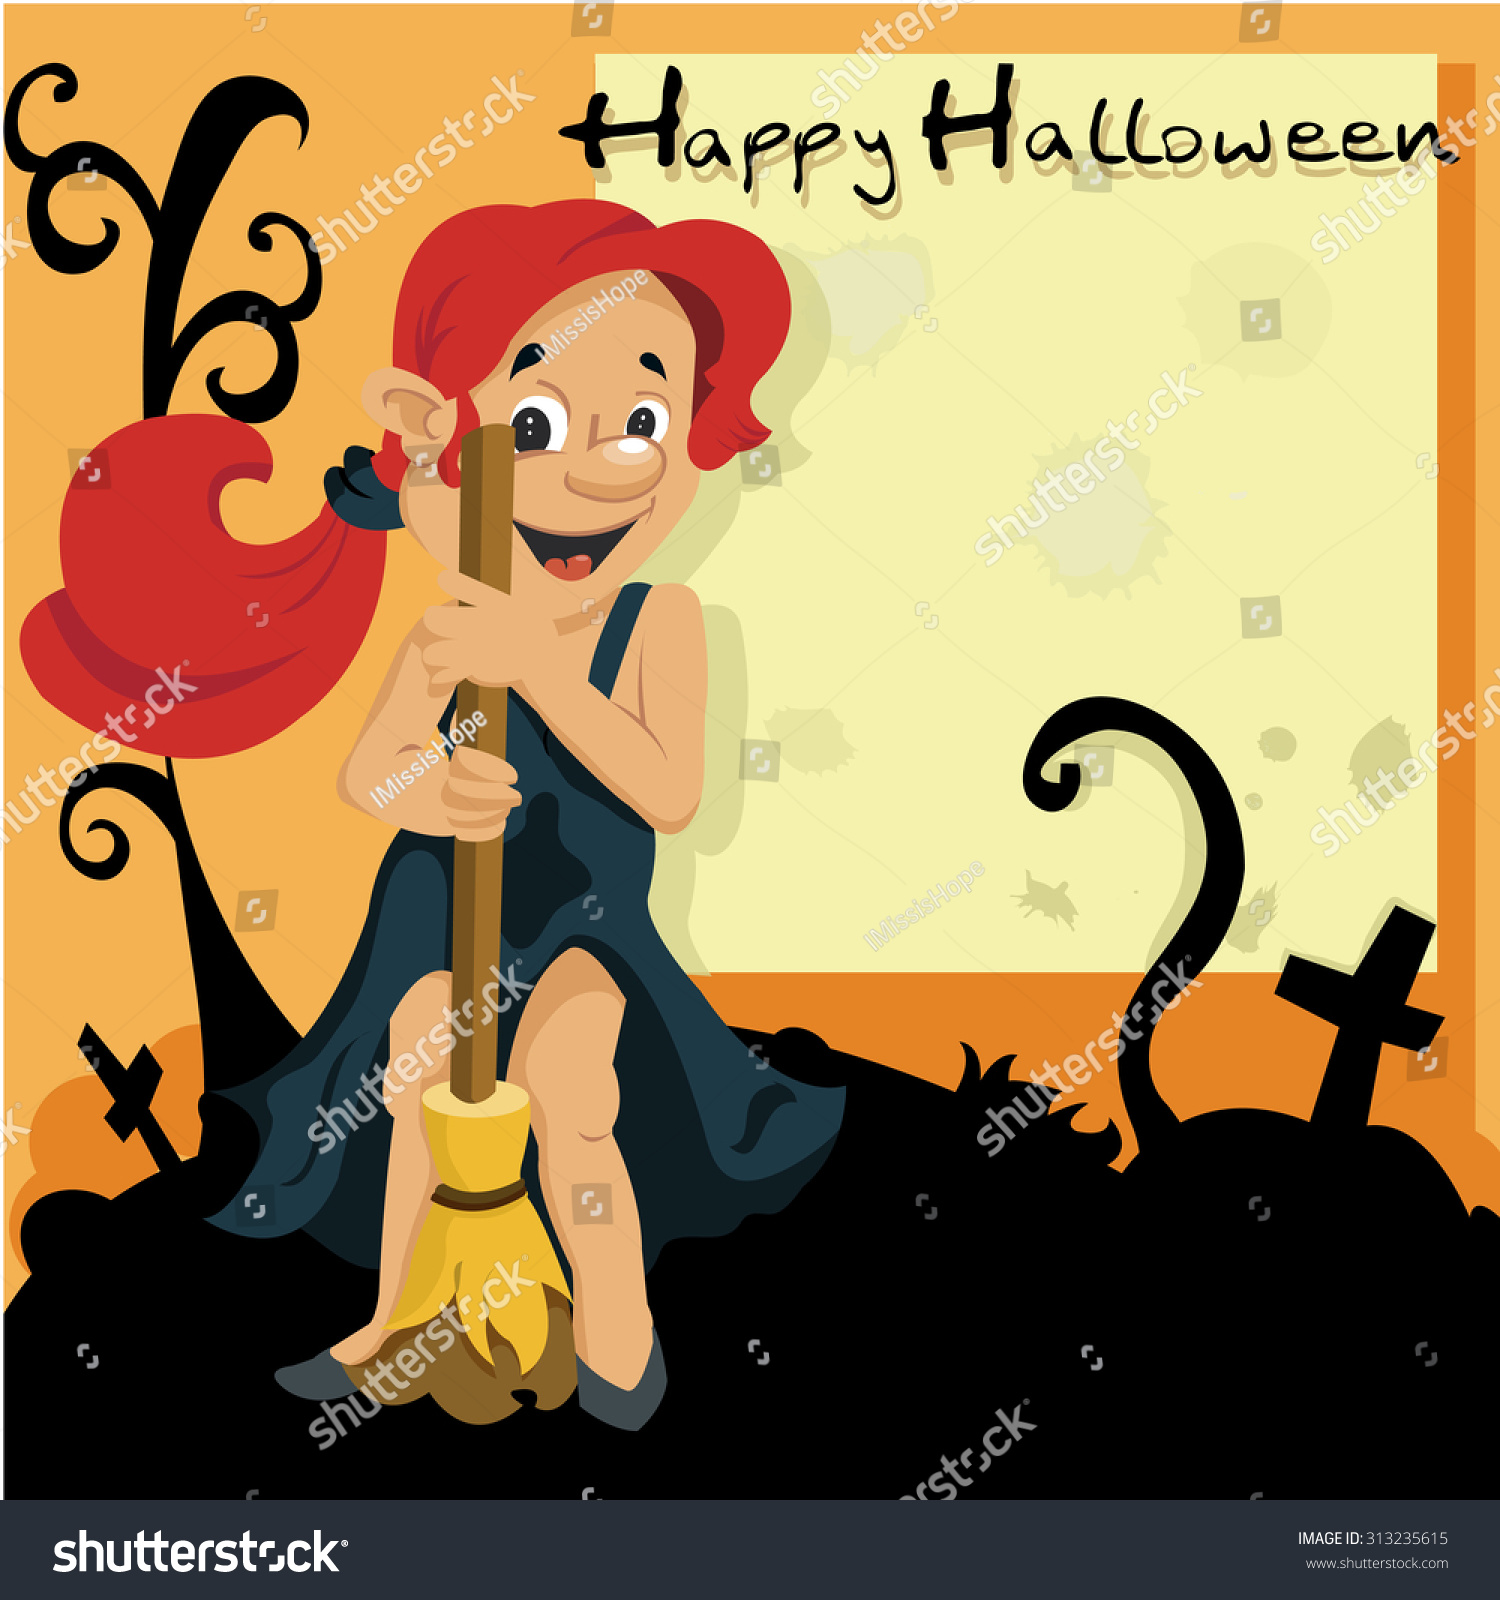 Animated Halloween Greetings Image Collections Greetings Card